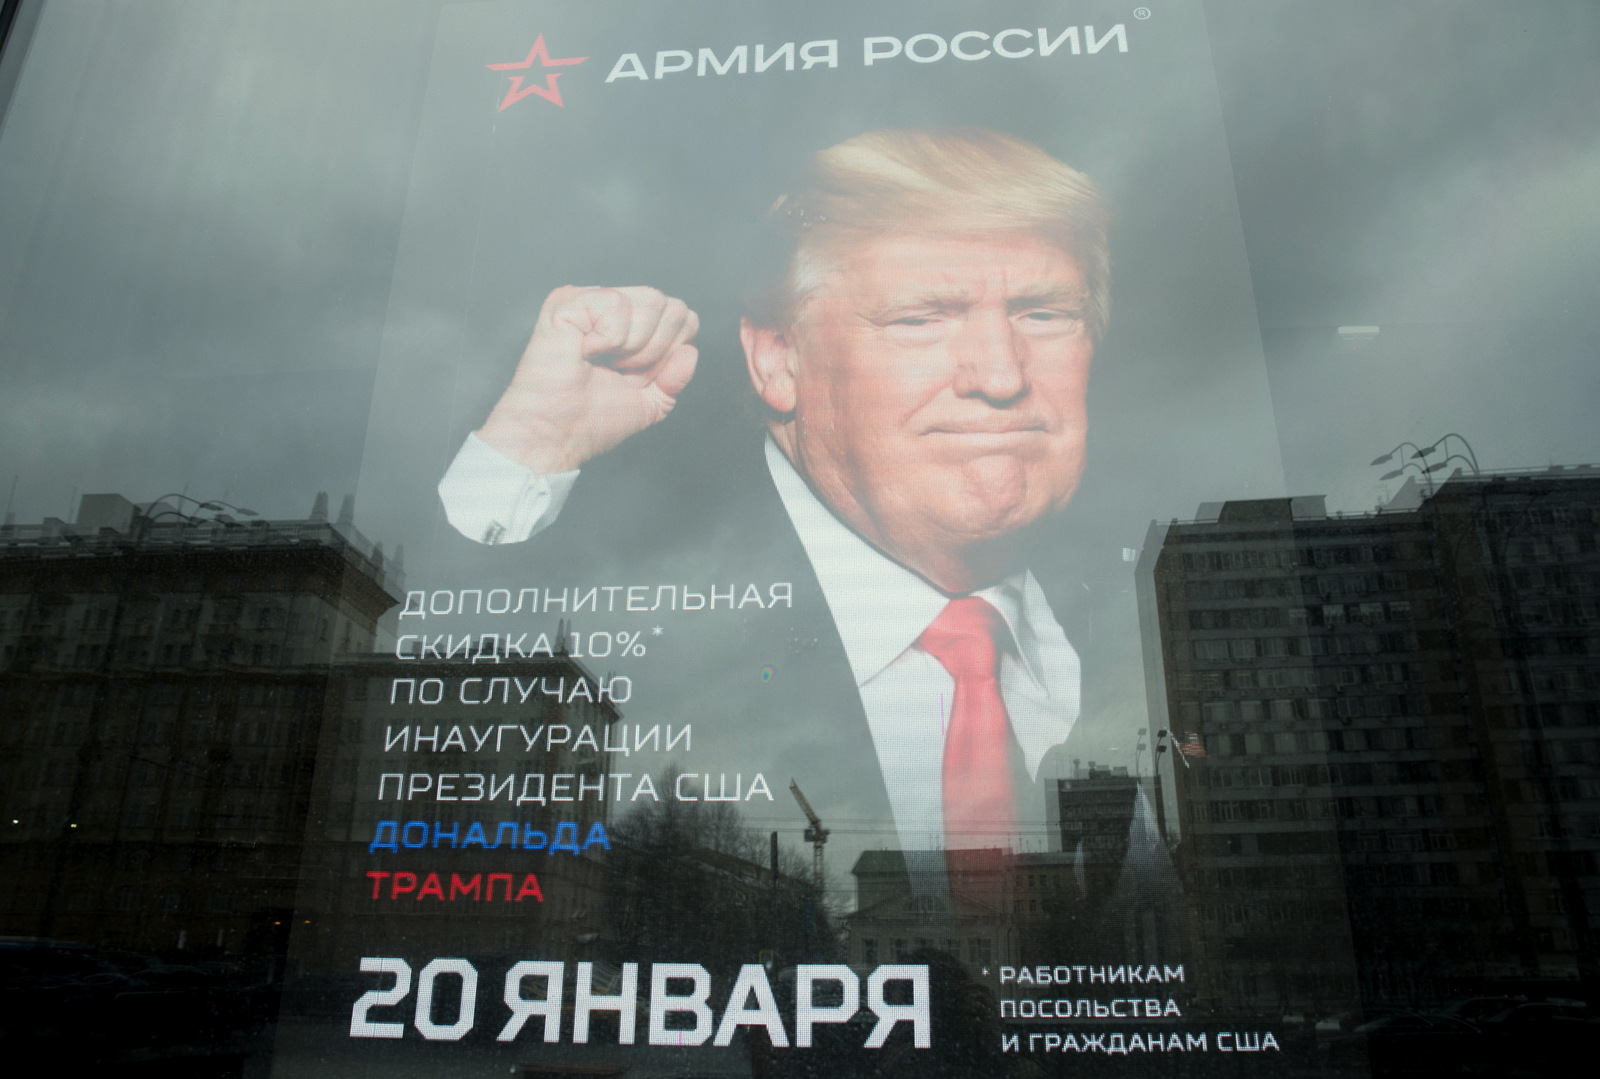 """The U.S. Embassy building is reflected in a window of a Russian military outerwear shop """"Armia Rossii"""" (Russian Army) displaying a poster of Donald Trump, in downtown Moscow, Russia, Friday, Jan. 20, 2017, hours ahead of Donald Trump being sworn in as president of the United States, The poster reads: """"10 percent discount to the embassy employees and US citizens on the Inauguration Day"""". (AP/Pavel Golovkin)"""